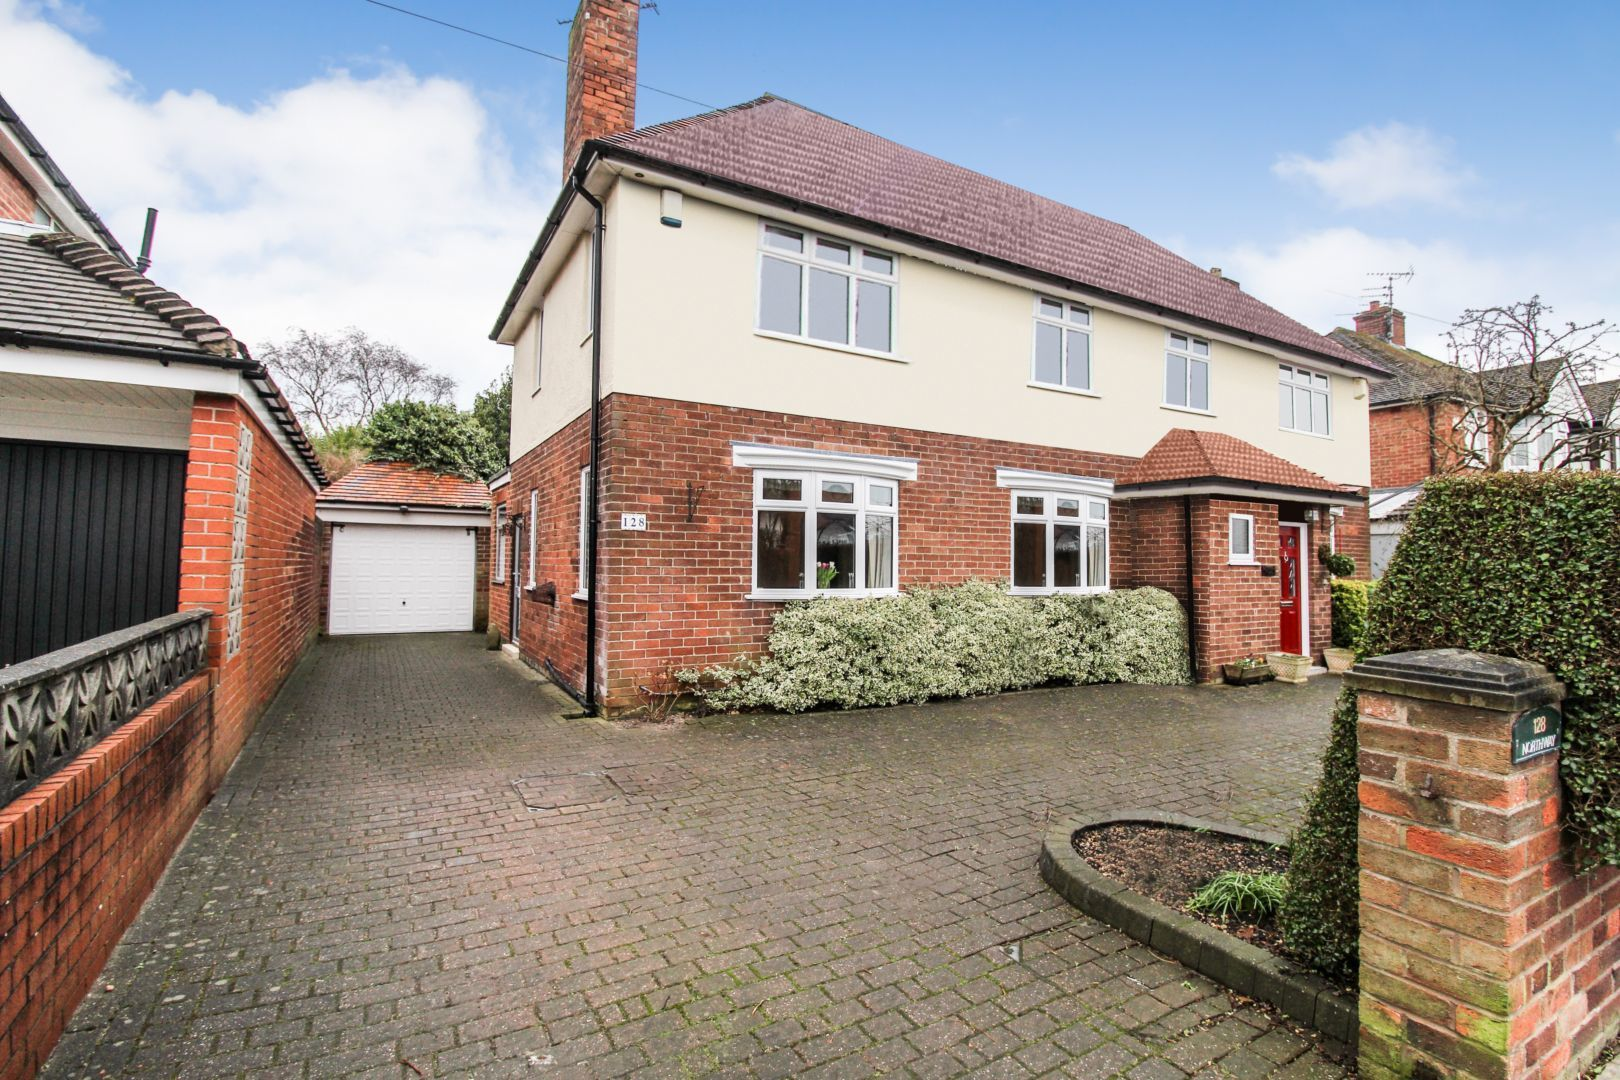 4 Bedroom Detached House For Sale Northway Maghull L Liverpool L31 5nf Thehouseshop Com